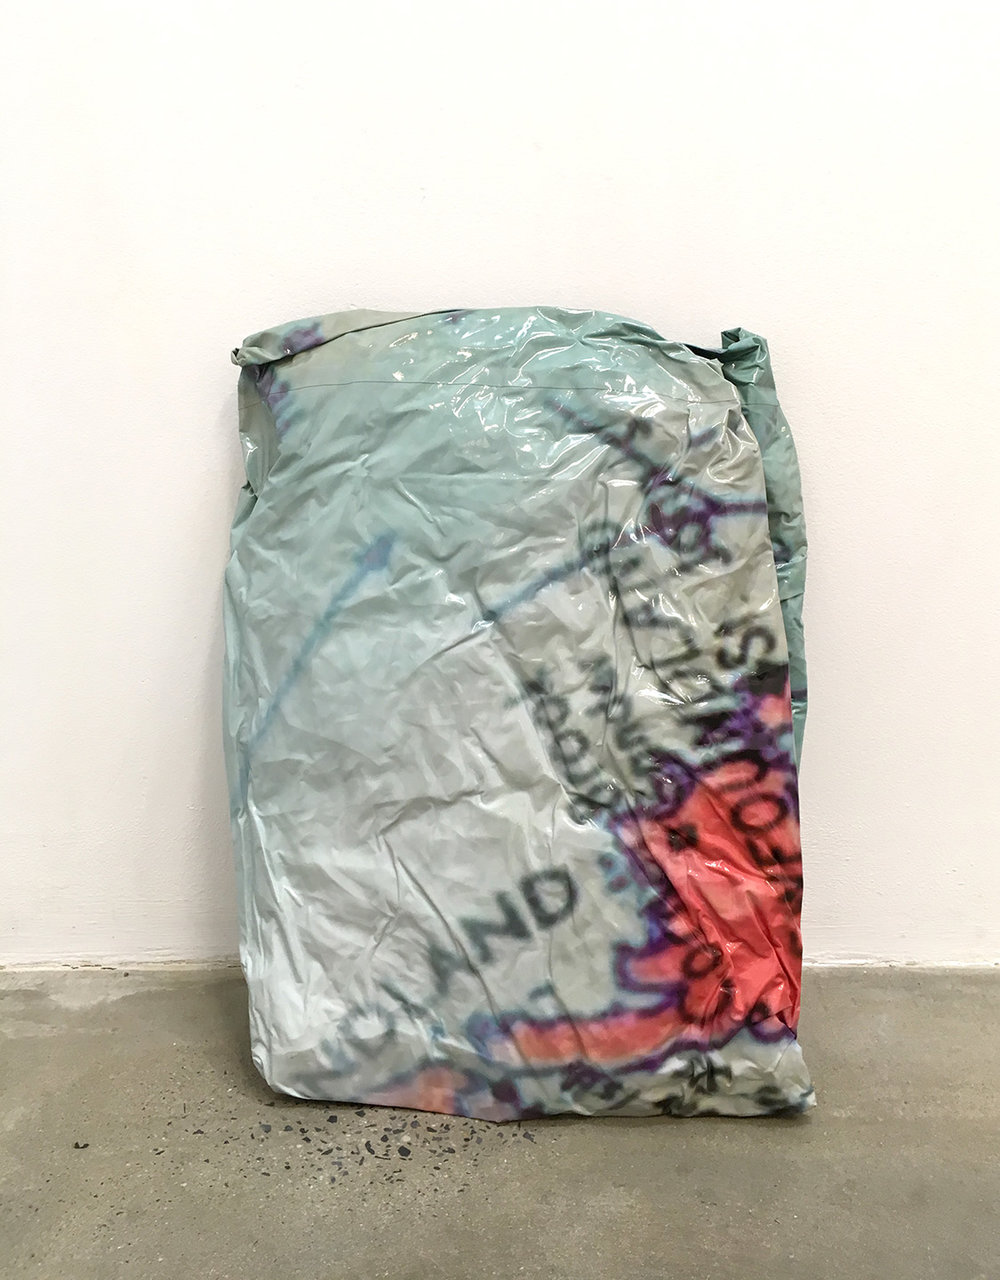 Kelly Jazvac, Untitled #2 (found objects), 2012, Found de-installed vinyl banner, Dimensions variable